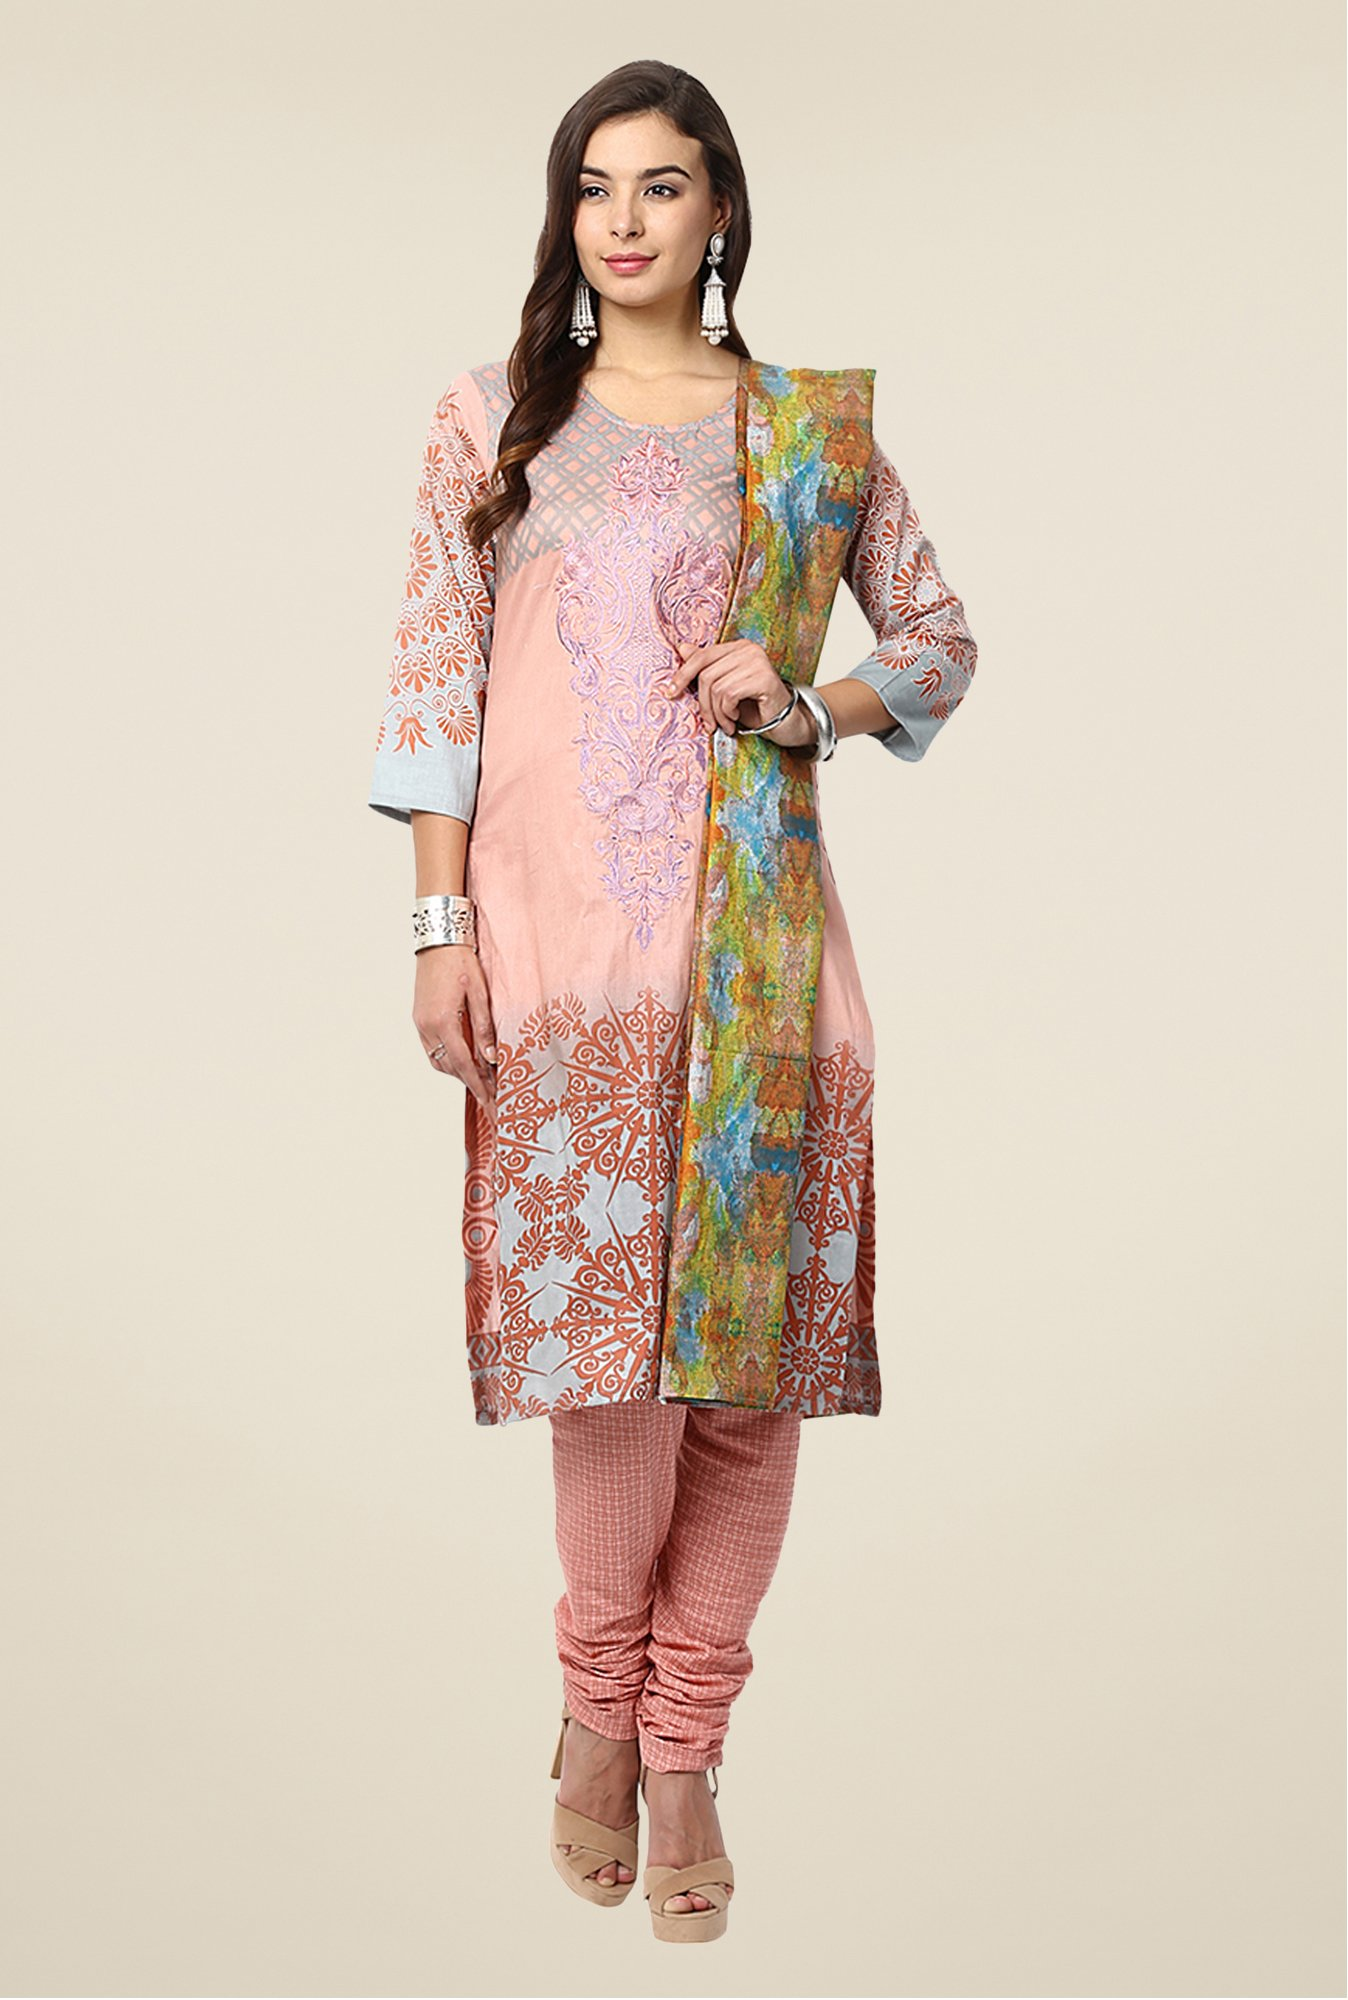 Yepme Peach Nazia Semi Stitched Pakistani Suit Set